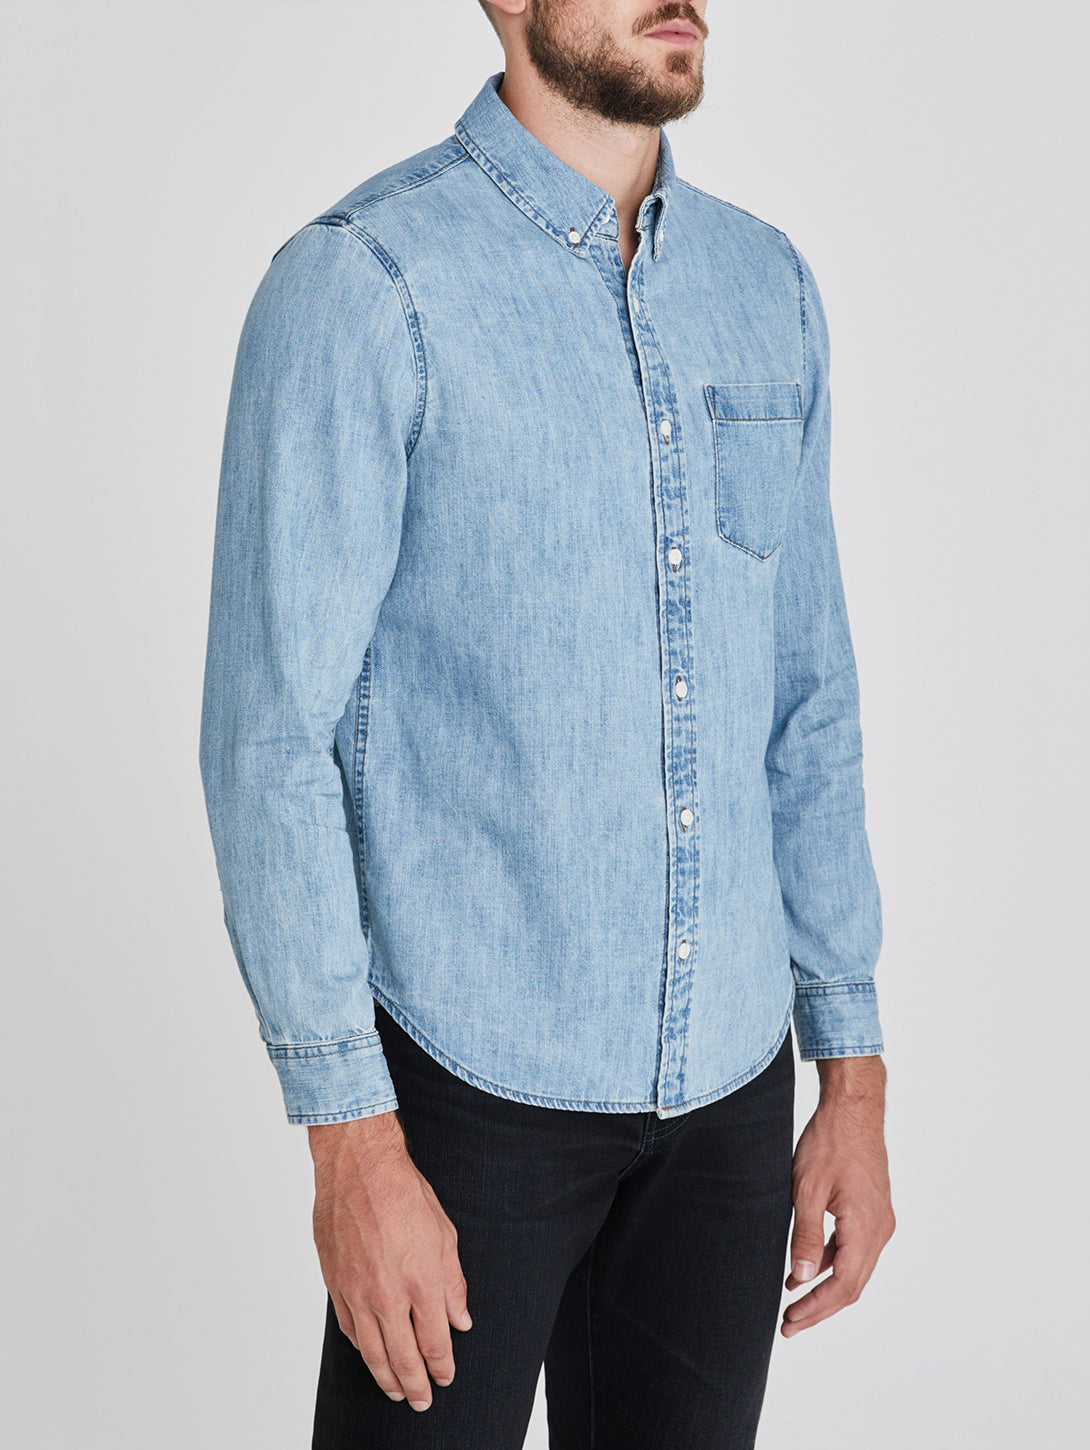 Aiden Classic Long Sleeve Button Down Shirt - Caveat-AG Jeans-Over the Rainbow